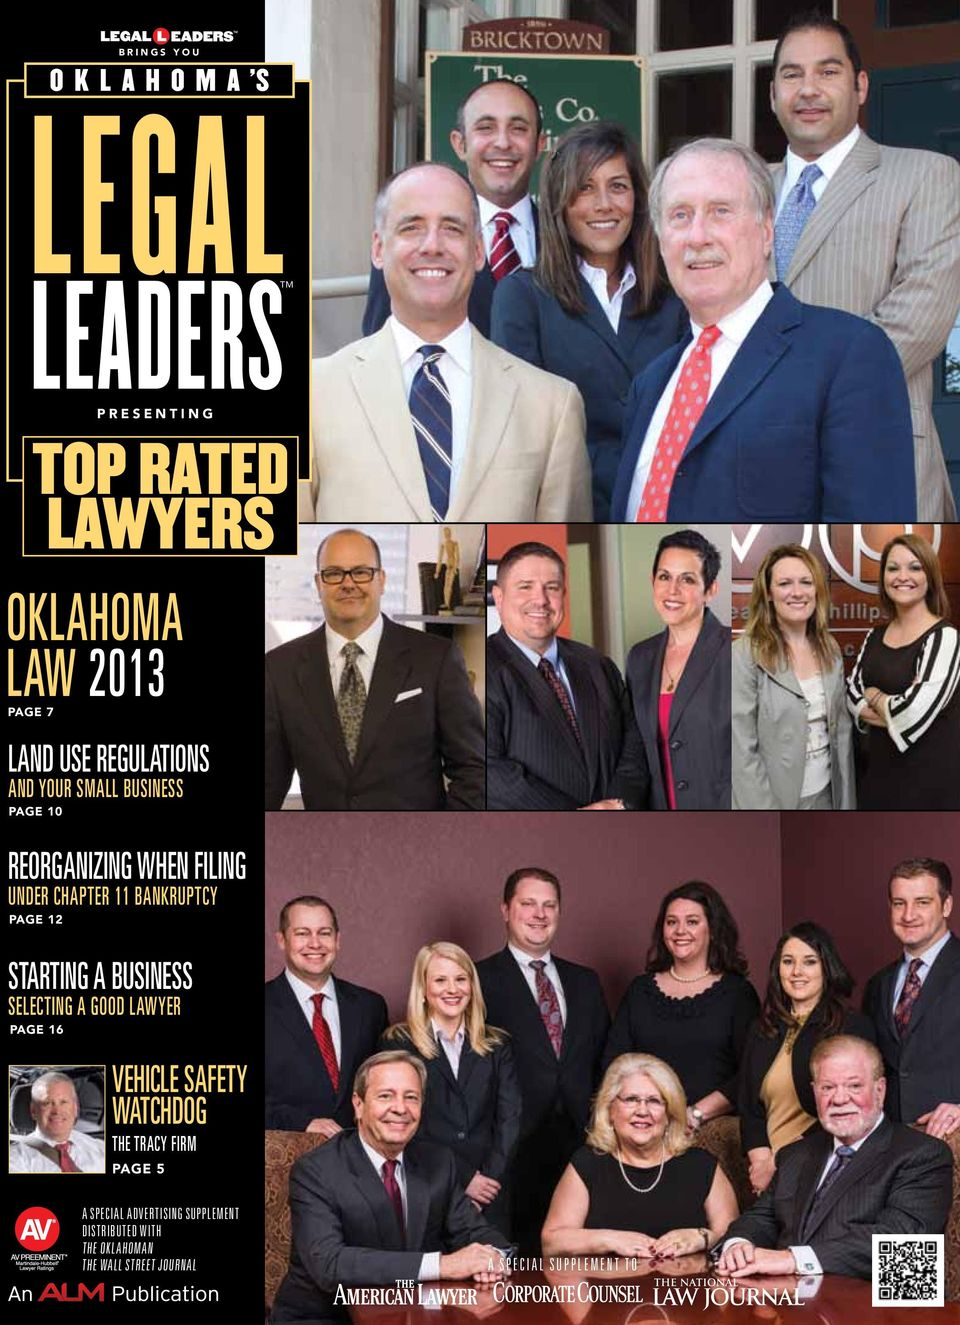 PAGE 12 STARTING A BUSINESS SELECTING A GOOD LAWYER PAGE 16 VEHICLE SAFETY WATCHDOG THE TRACY FIRM PAGE